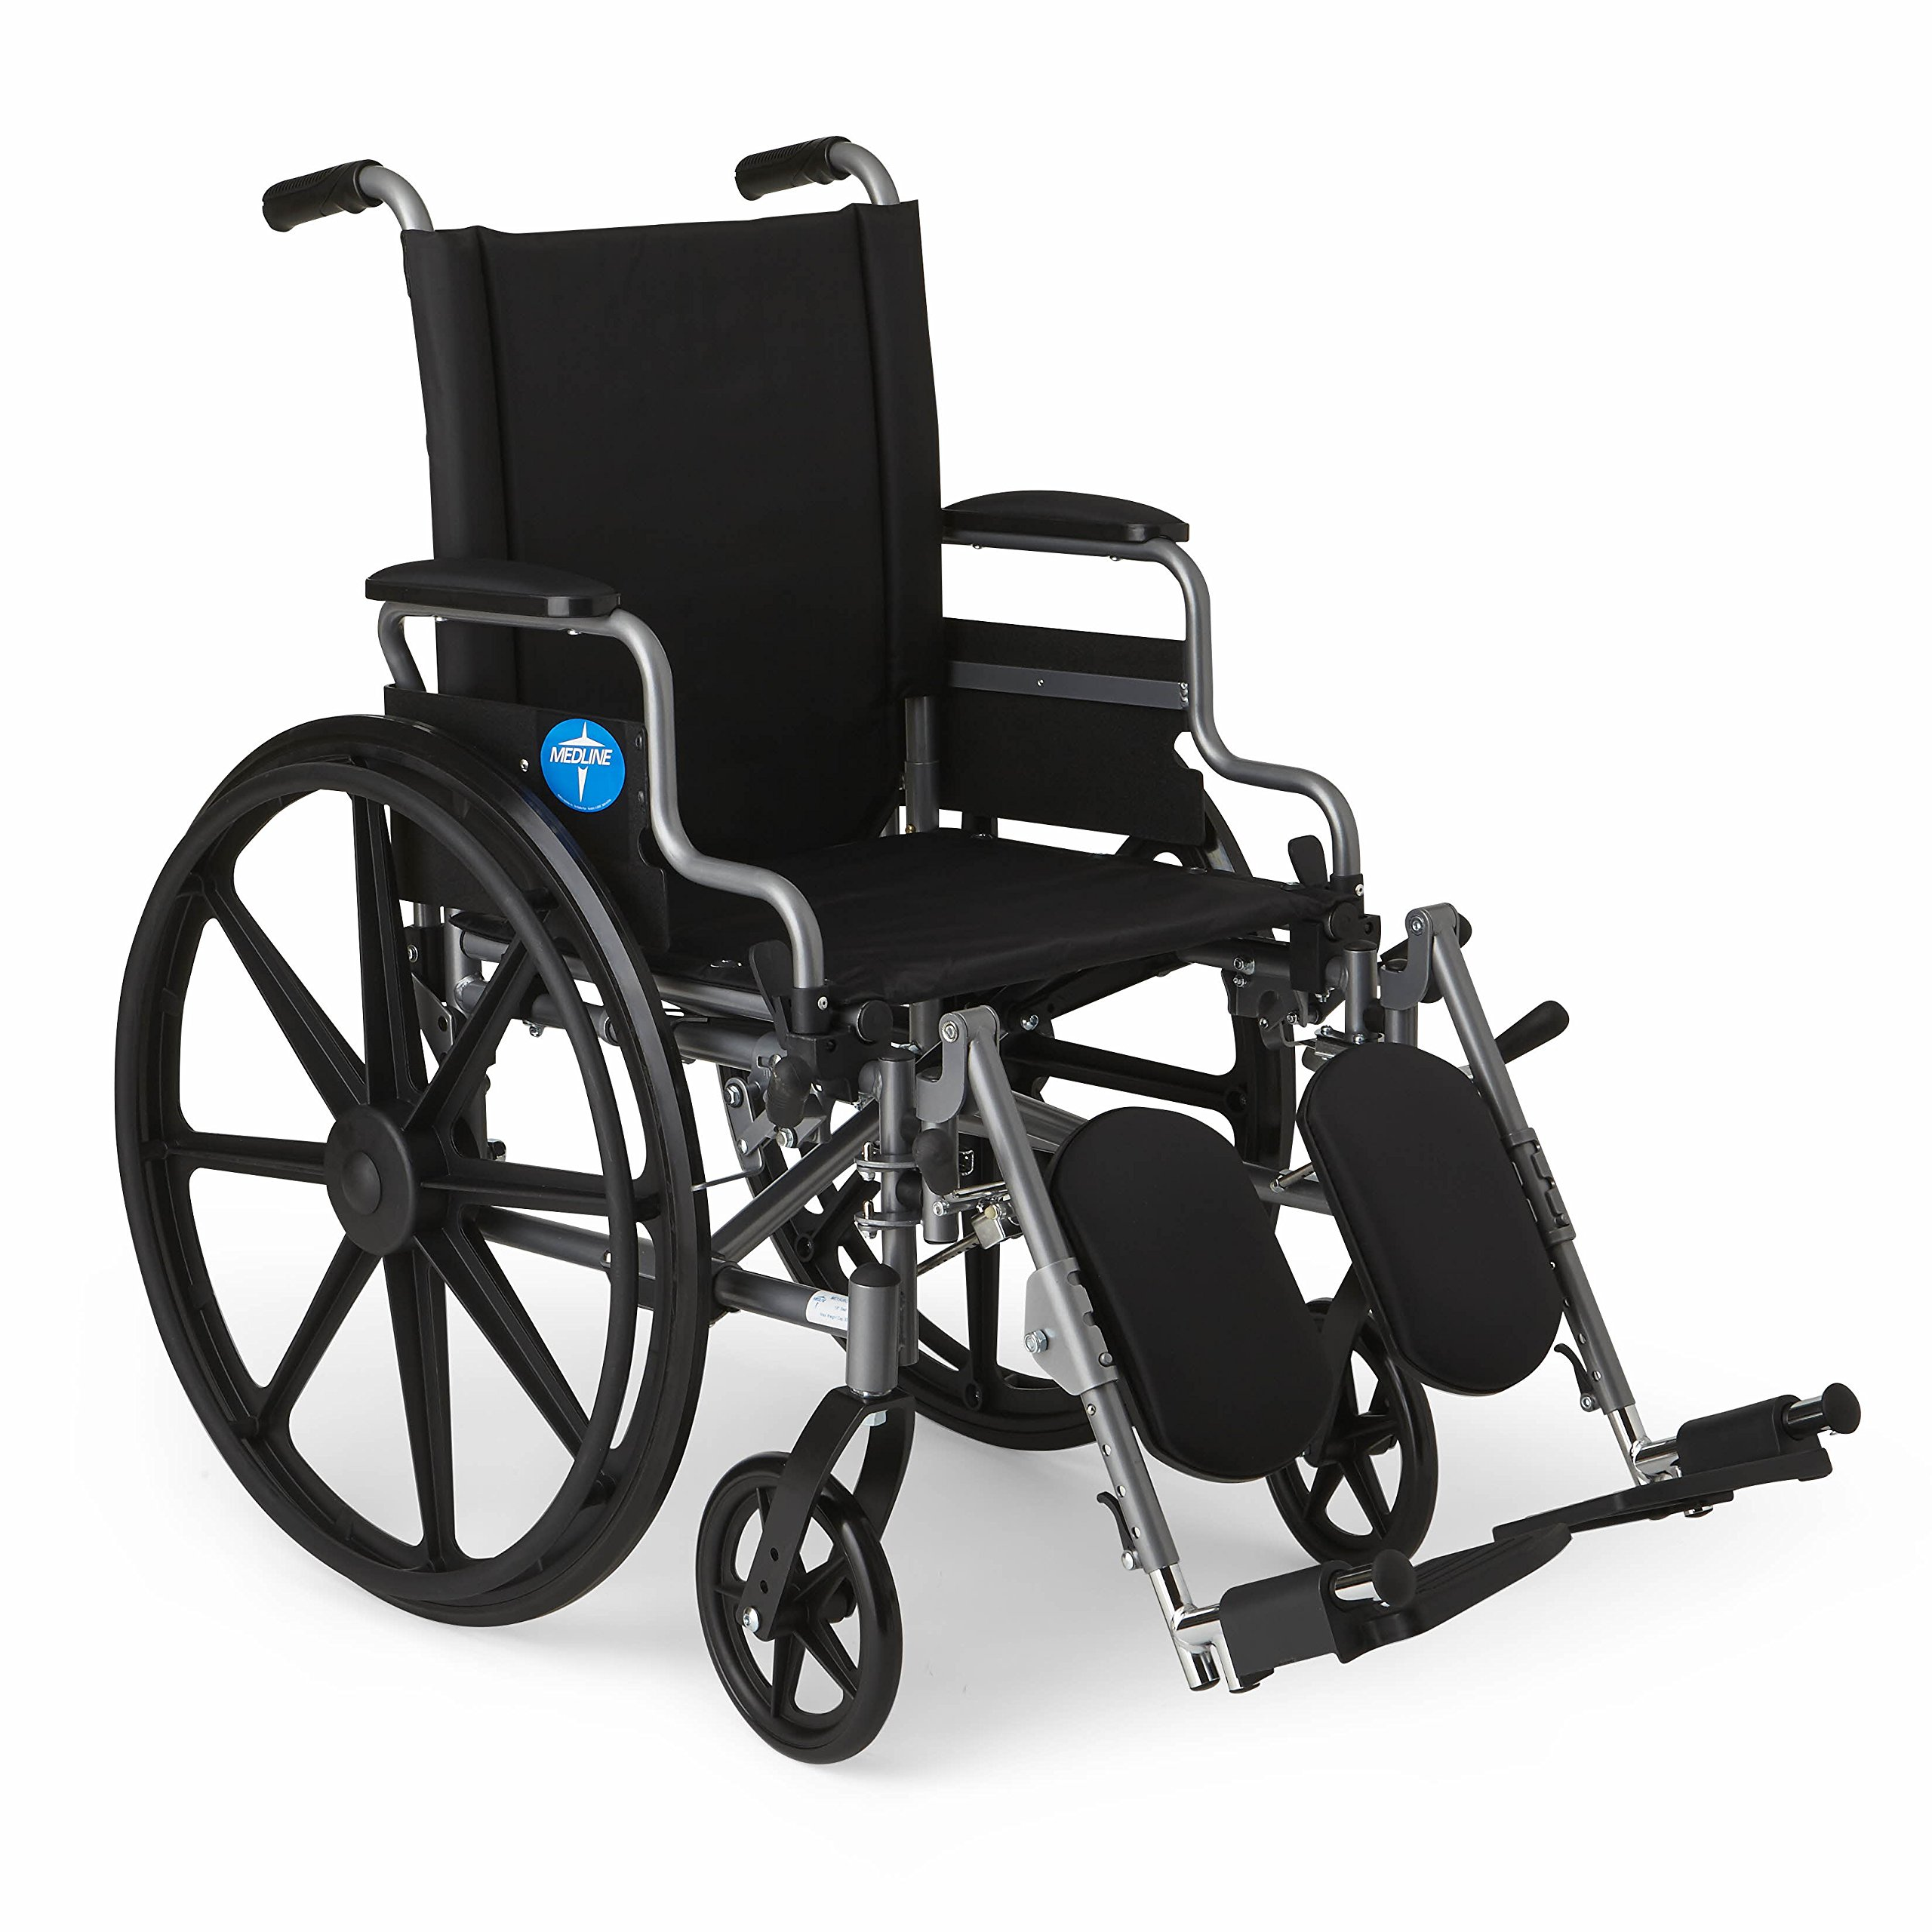 "Medline Lightweight and User-Friendly Wheelchair with Flip-Back, Desk-Length Arms and Elevating Leg Rests for Extra Comfort, Gray, 18"" Seat by Medline"